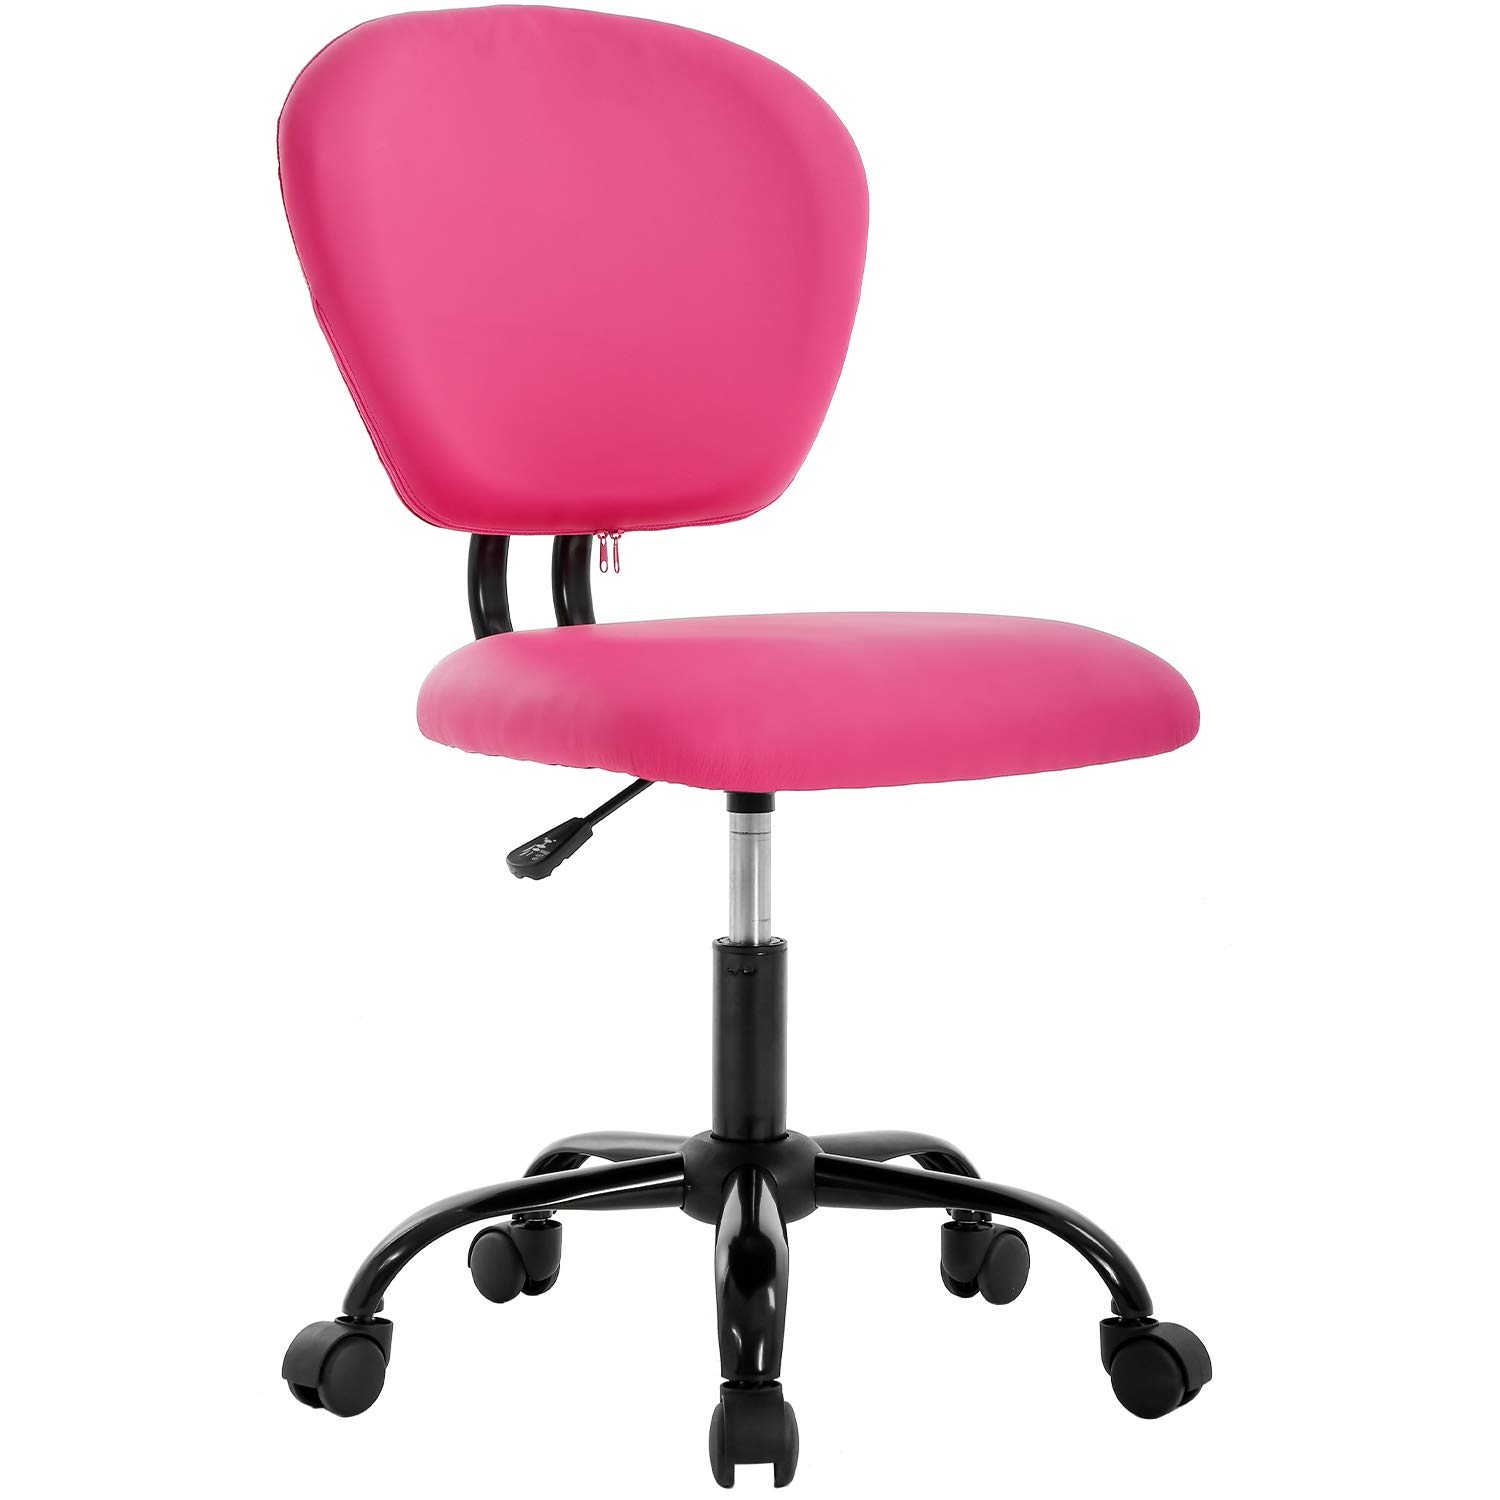 Surprising Office Chair Ergonomic Desk Chair Pu Leather Executive Chair Rolling Swivel Adjustable Computer Chair With Lumbar Support For Women Men Pink Ncnpc Chair Design For Home Ncnpcorg